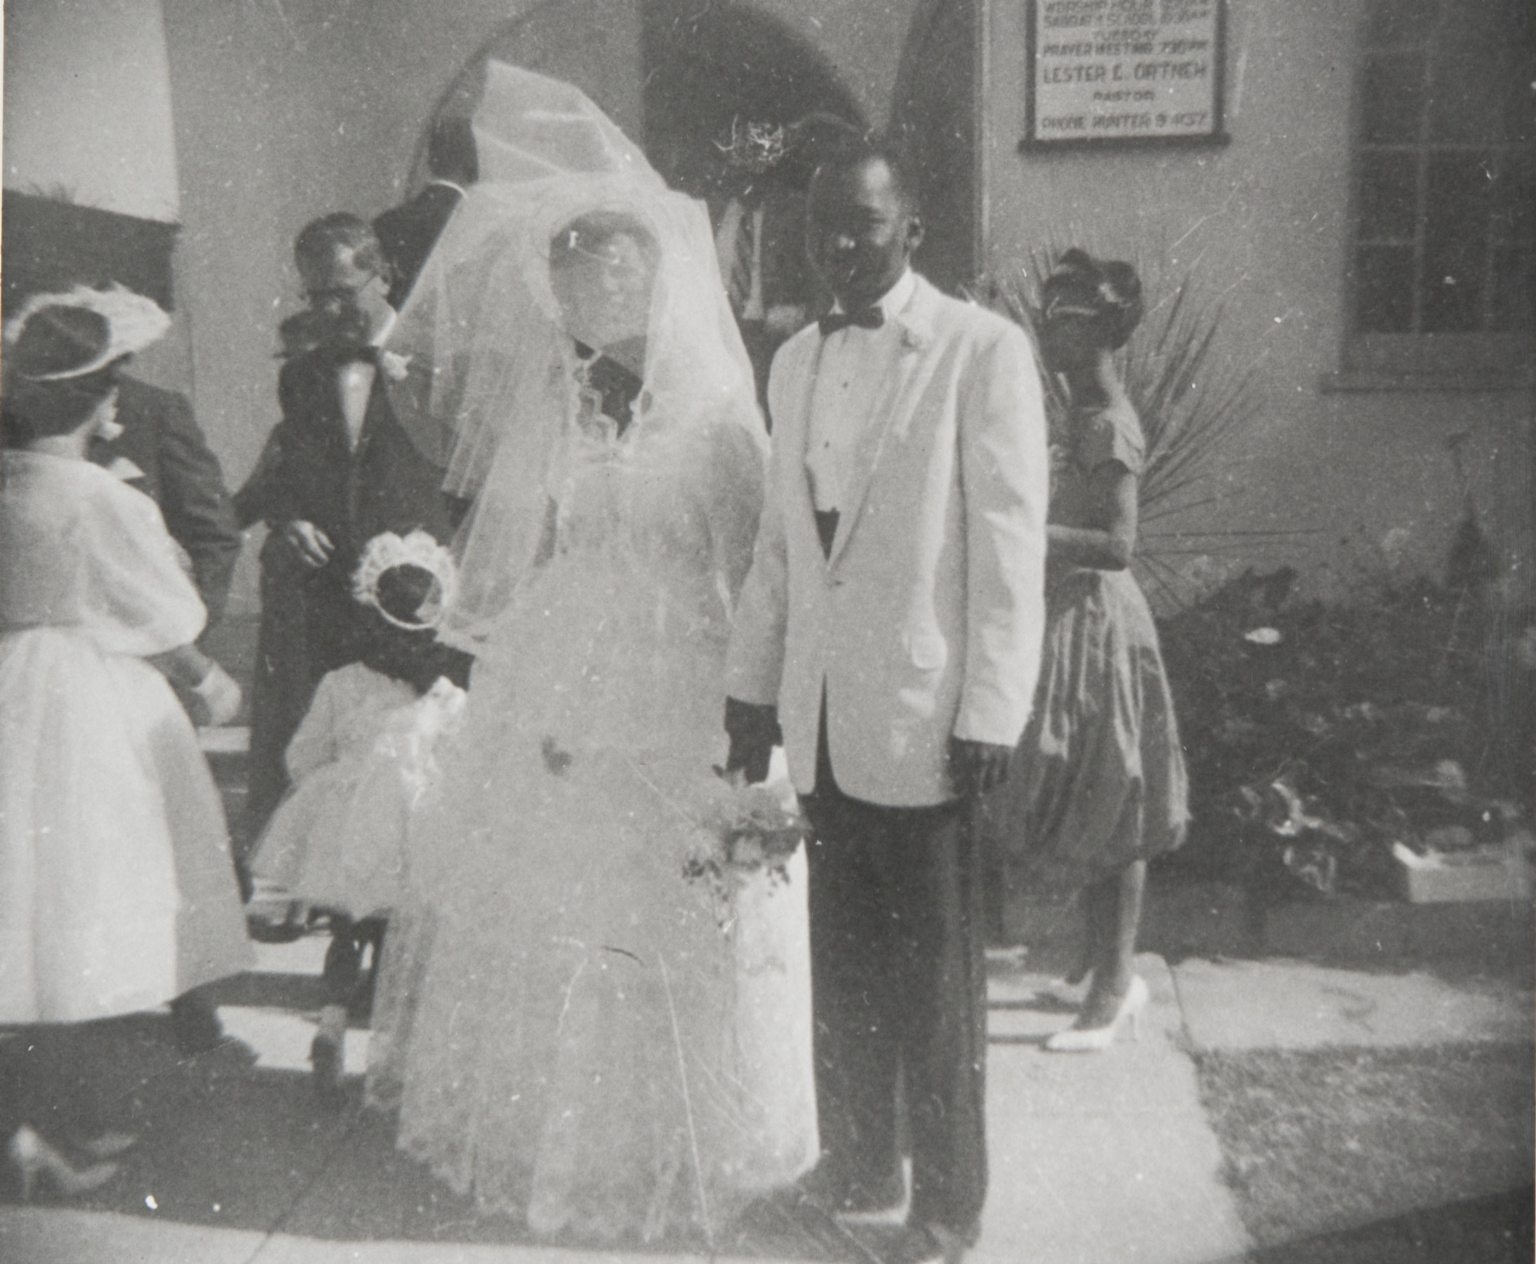 Wedding of Juanita and Maurice Prince, Seventh Day Adventist Church, Santa Maria : July 3, 1967.